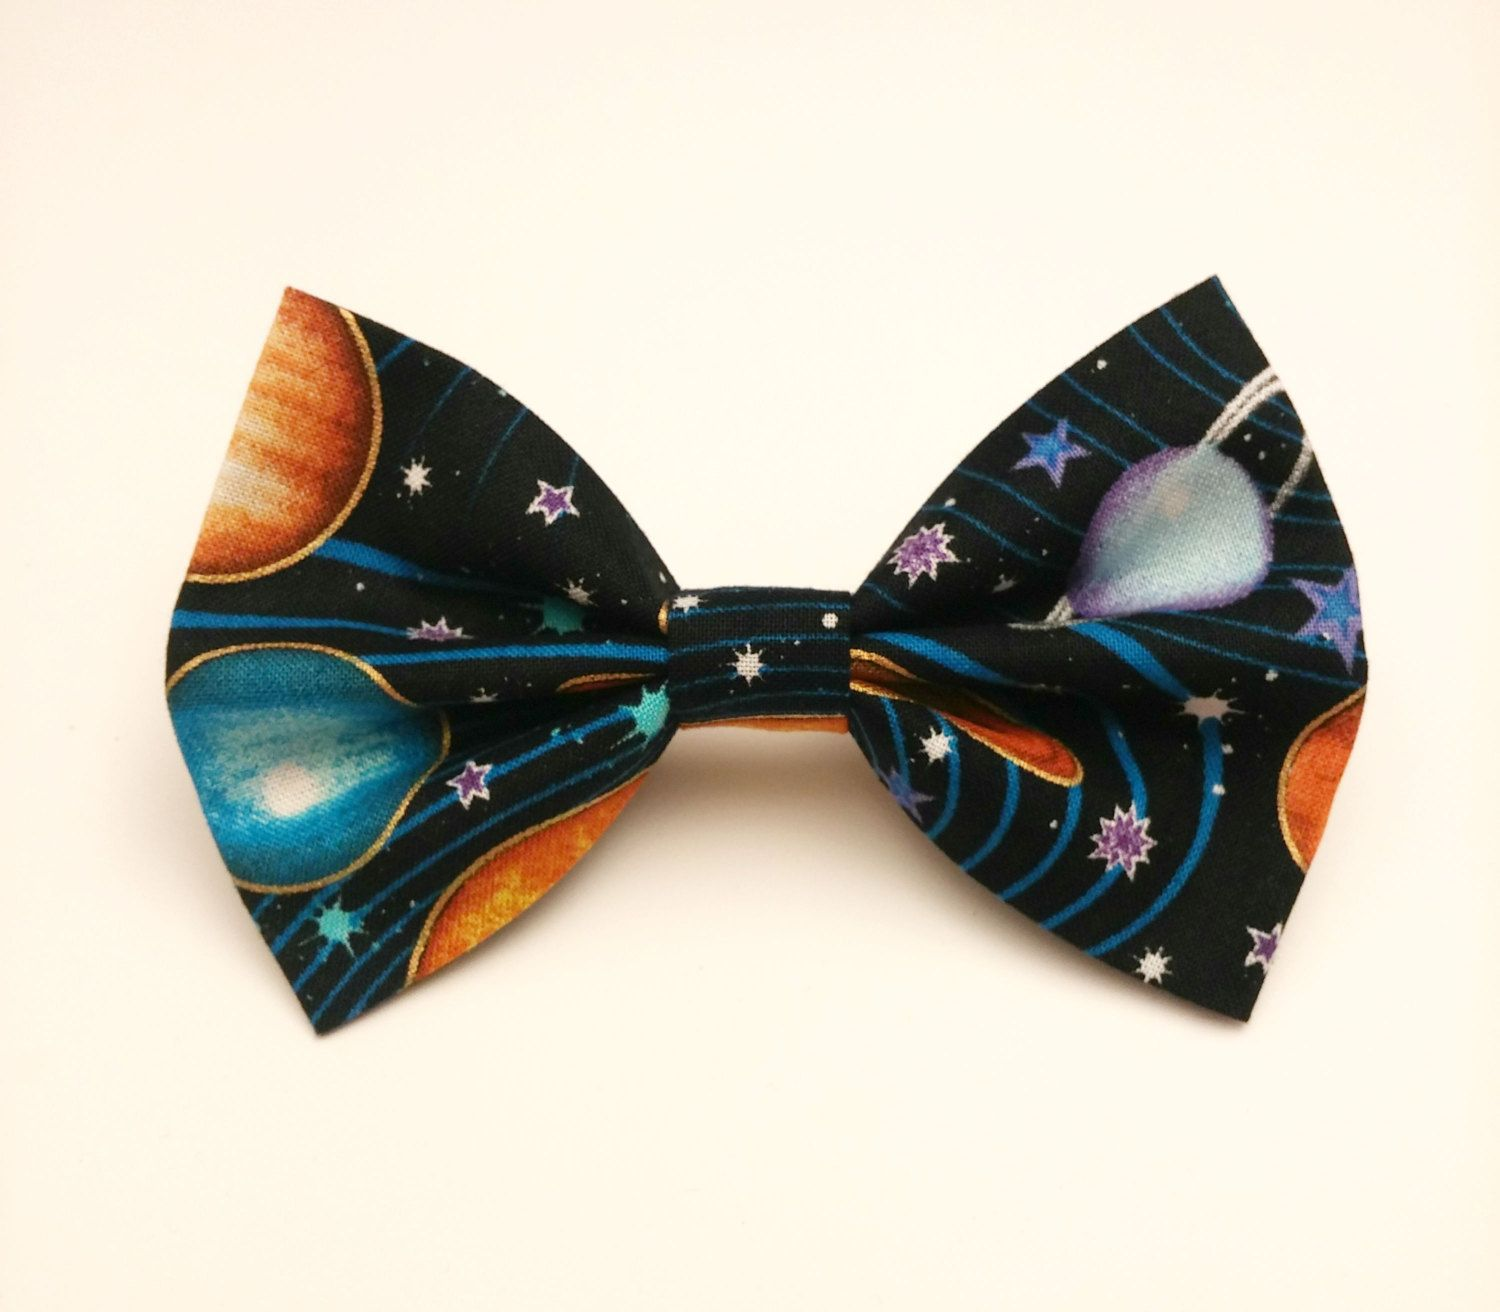 Planets Bow Tie/Star Bow Tie/Science Bow Tie/teacher gift/ Outer Space Bow Tie/Galaxy Bow Tie/Teacher Tie/Black Dog Bow Tie/men's. bow tie CscYNva3W